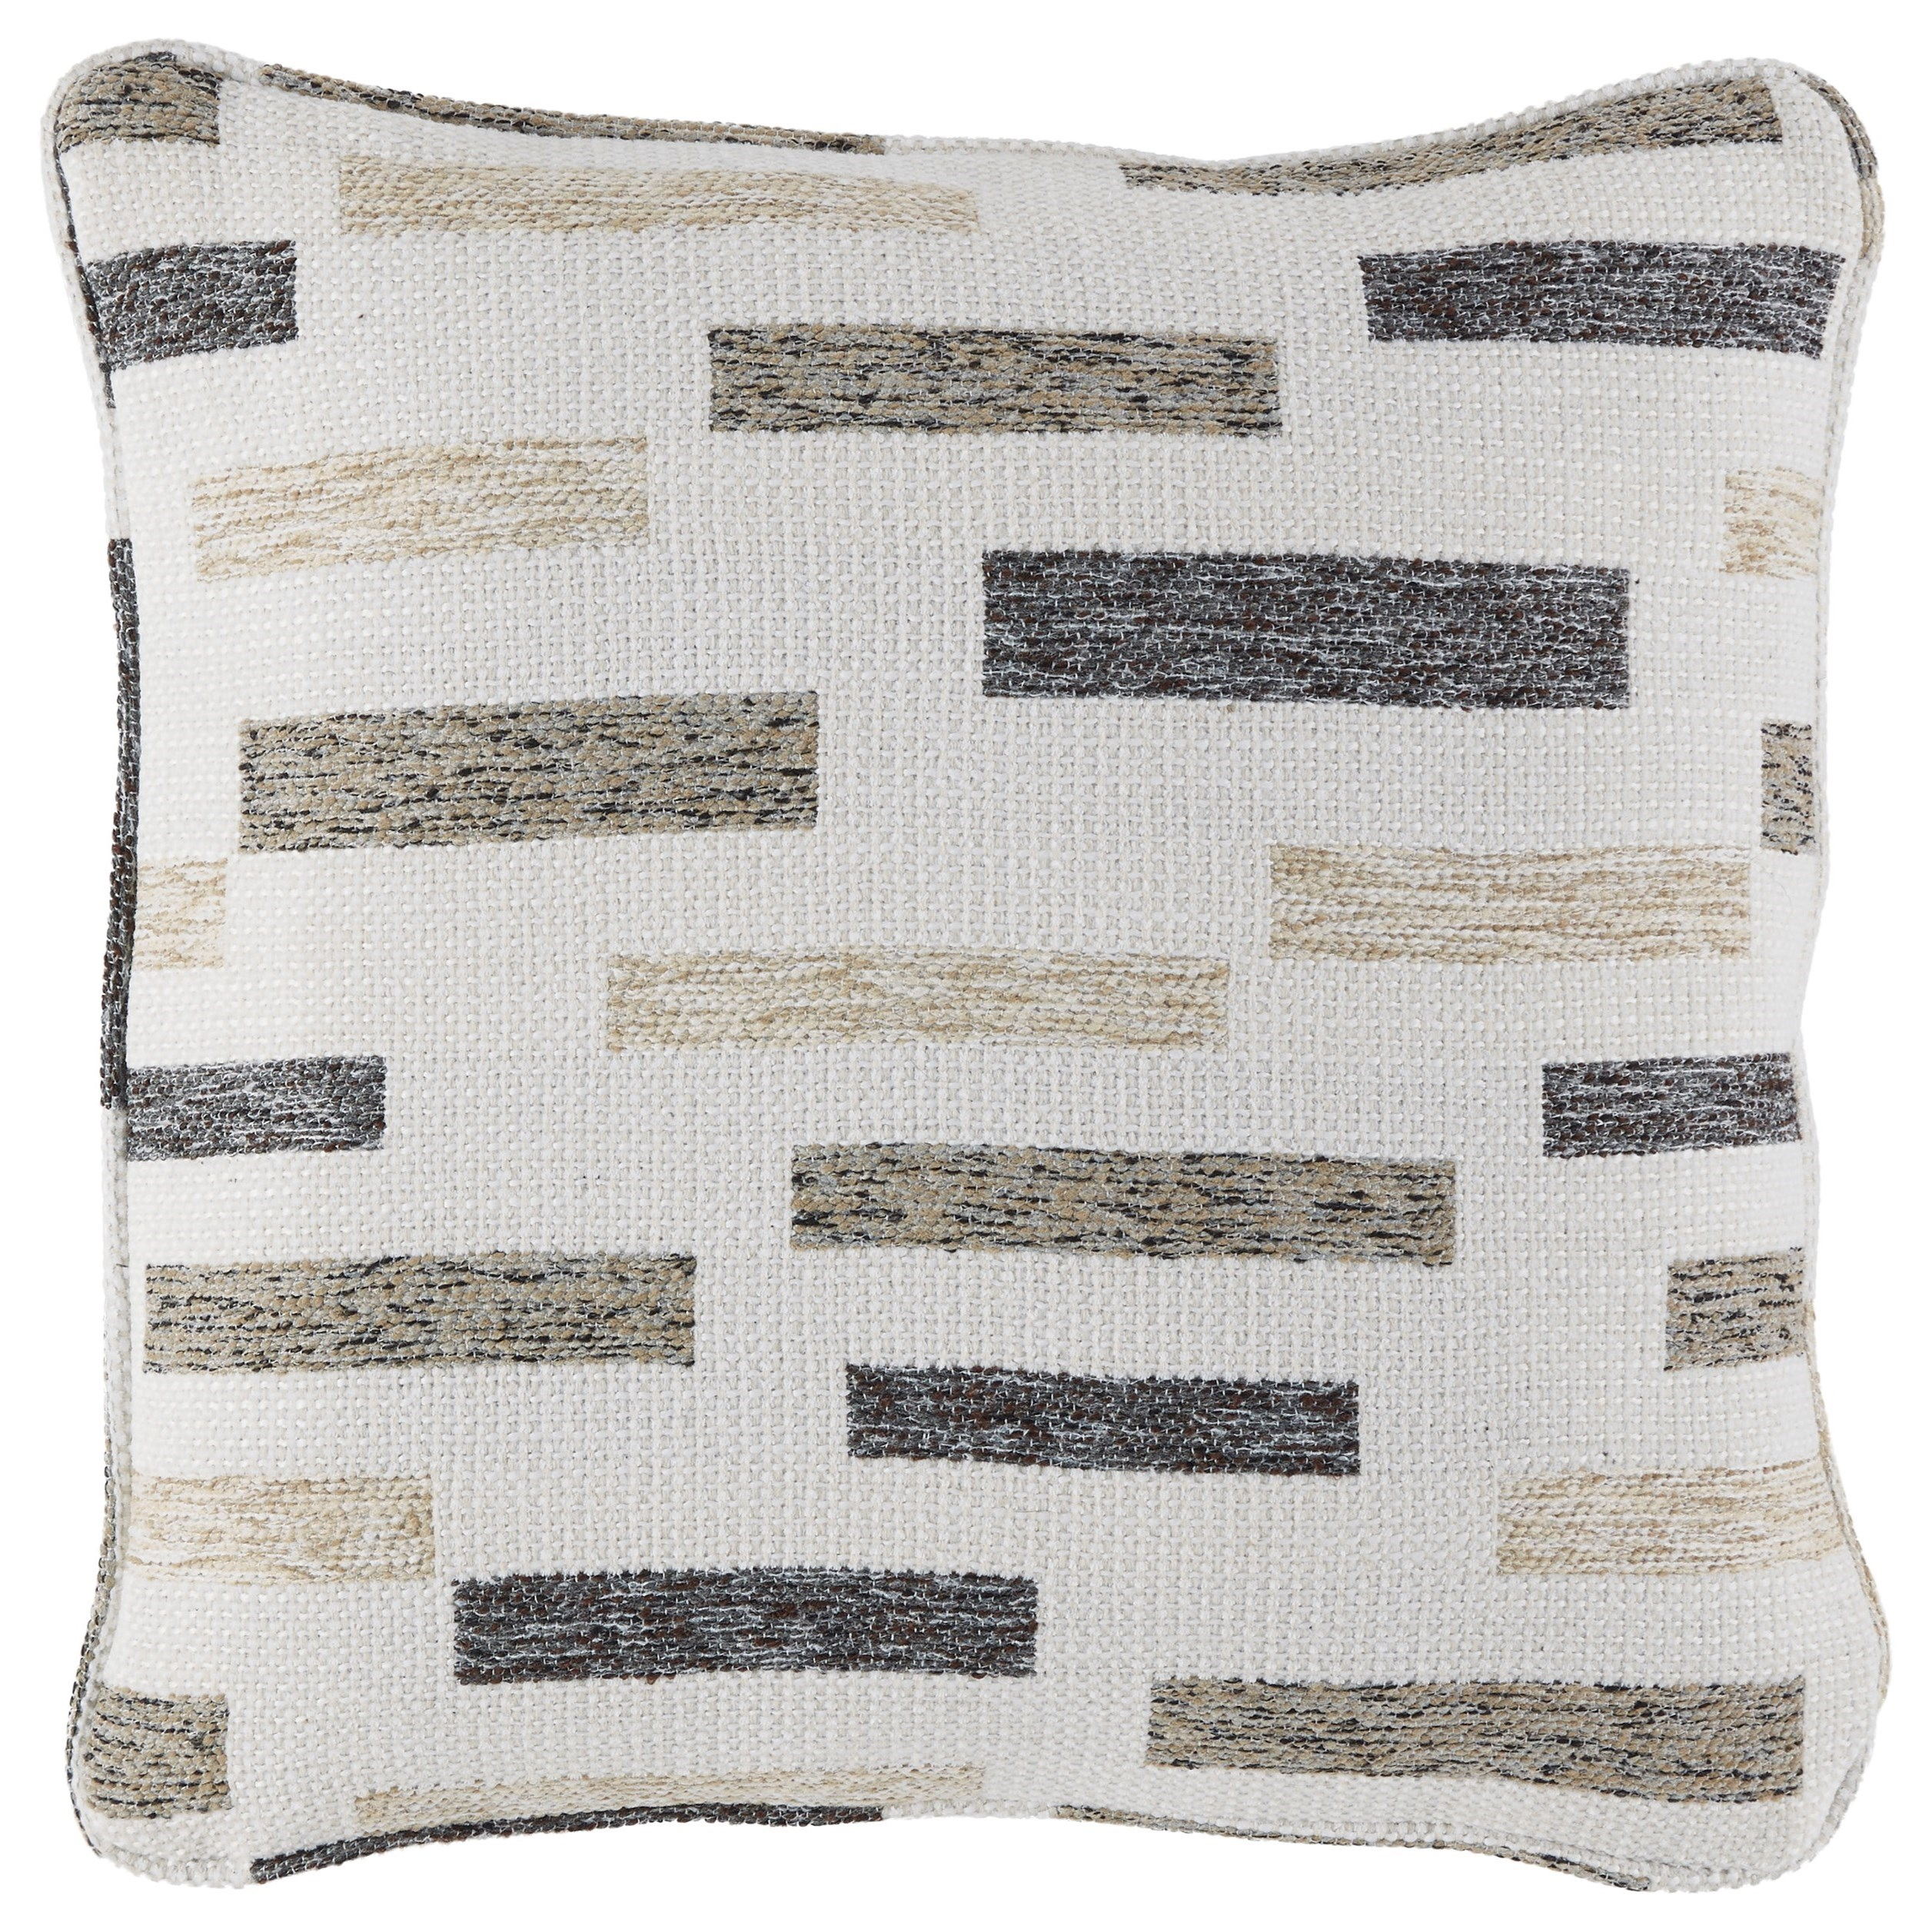 Pillows Crockett Black/Brown/Cream Pillow by Signature Design by Ashley at Carolina Direct